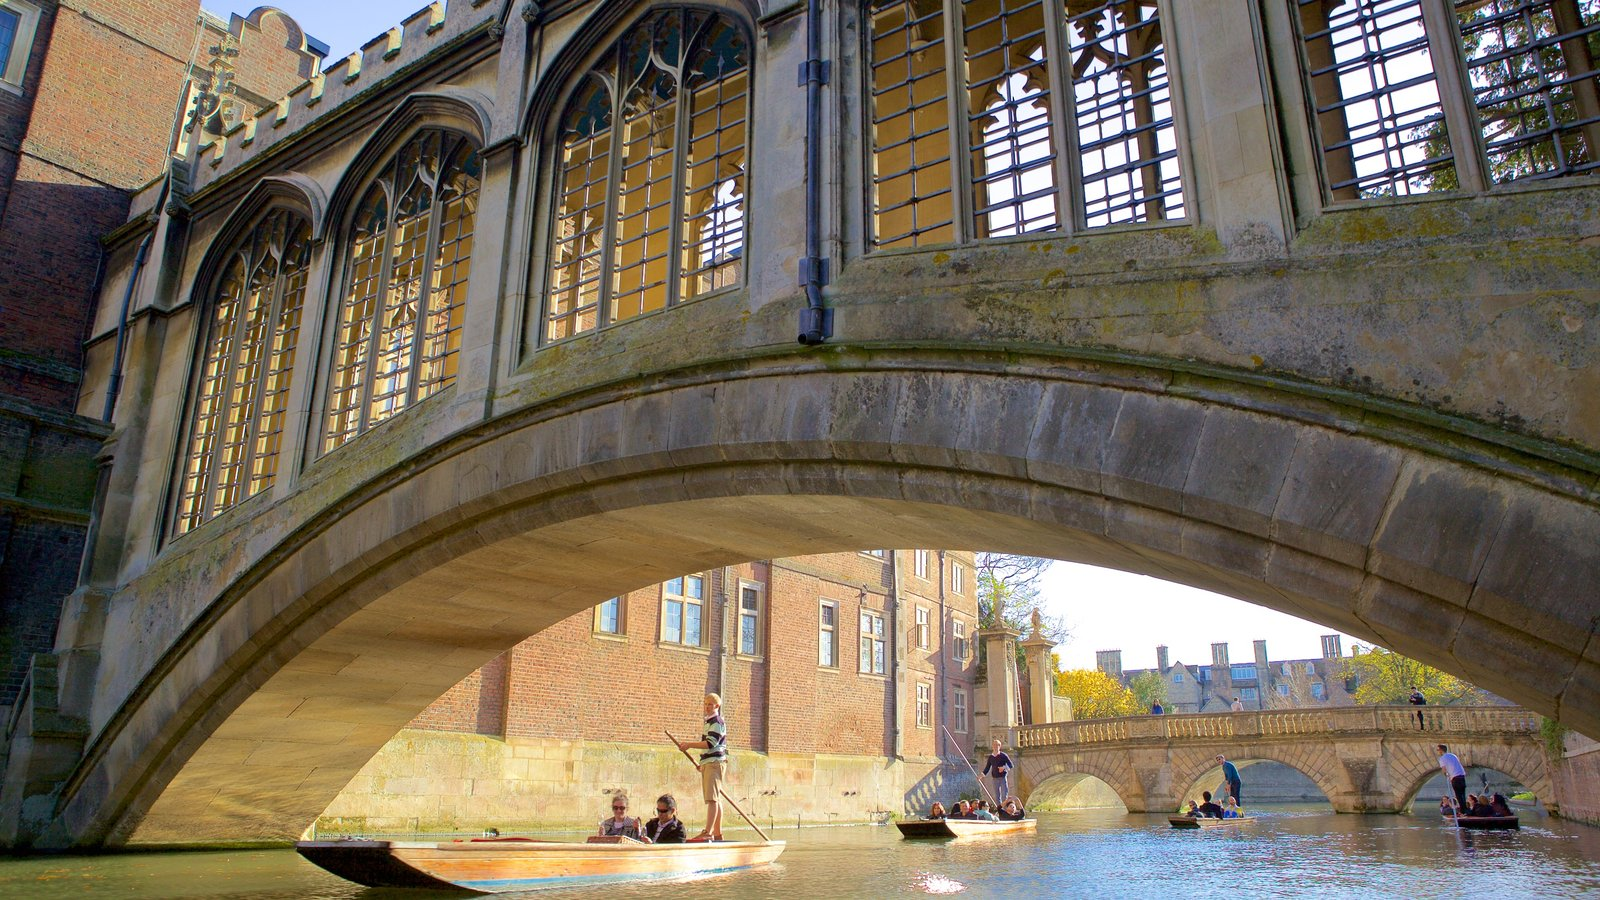 Bridge of Sighs featuring kayaking or canoeing, a bridge and heritage elements